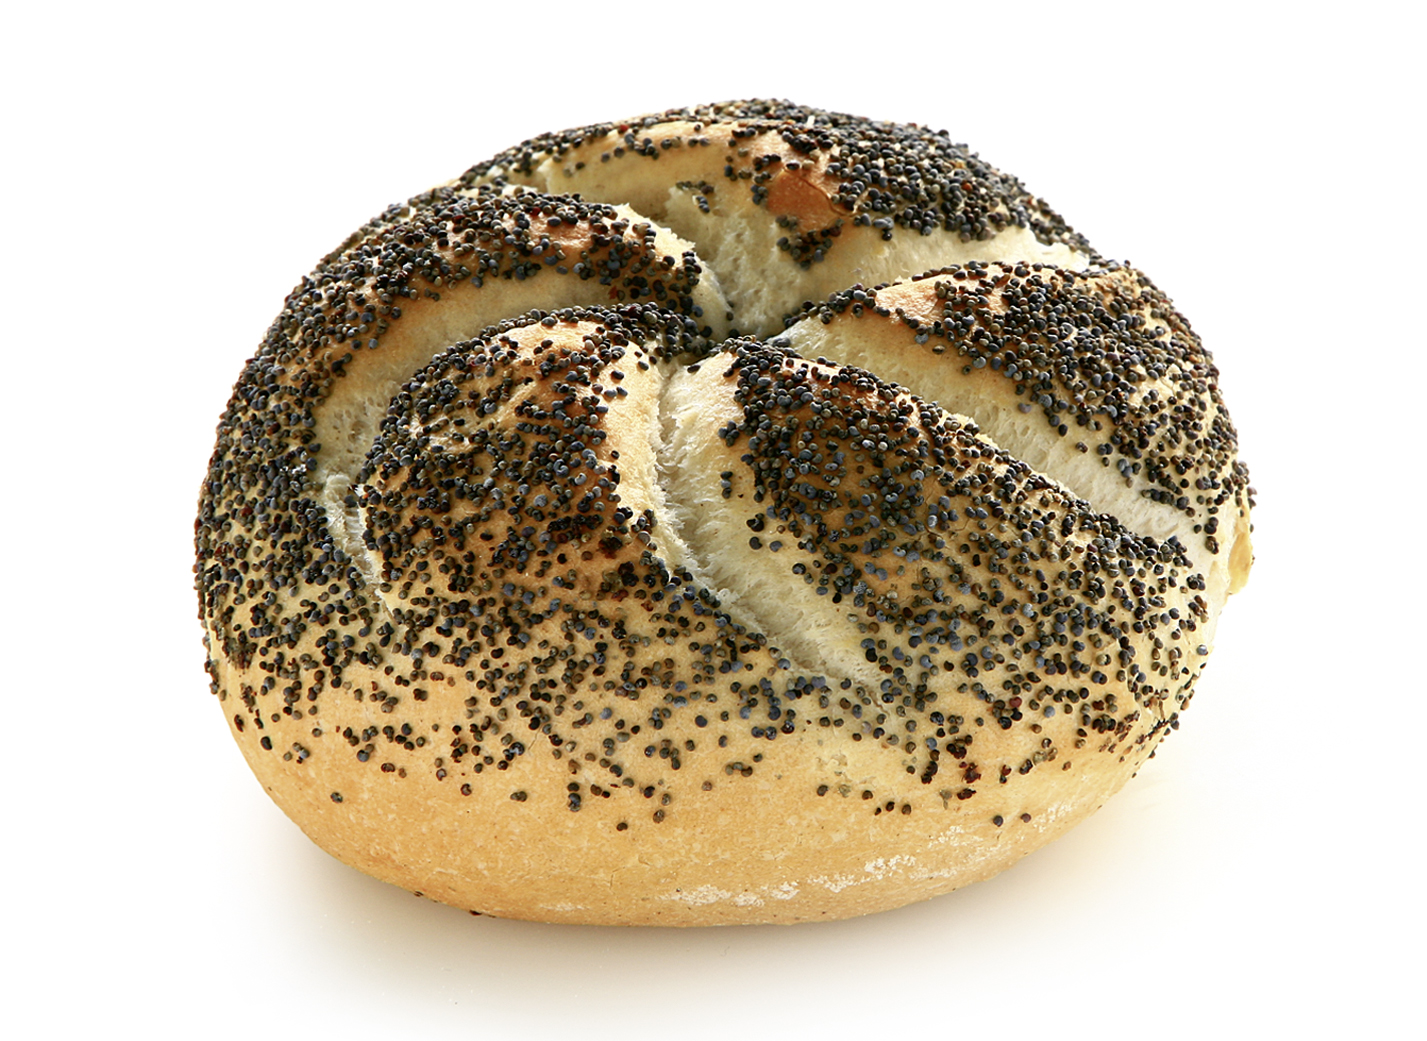 Kaiser Roll with Poppy Seeds - Wheat roll round/ with typical look and sprinkled with 2.9% poppy seeds